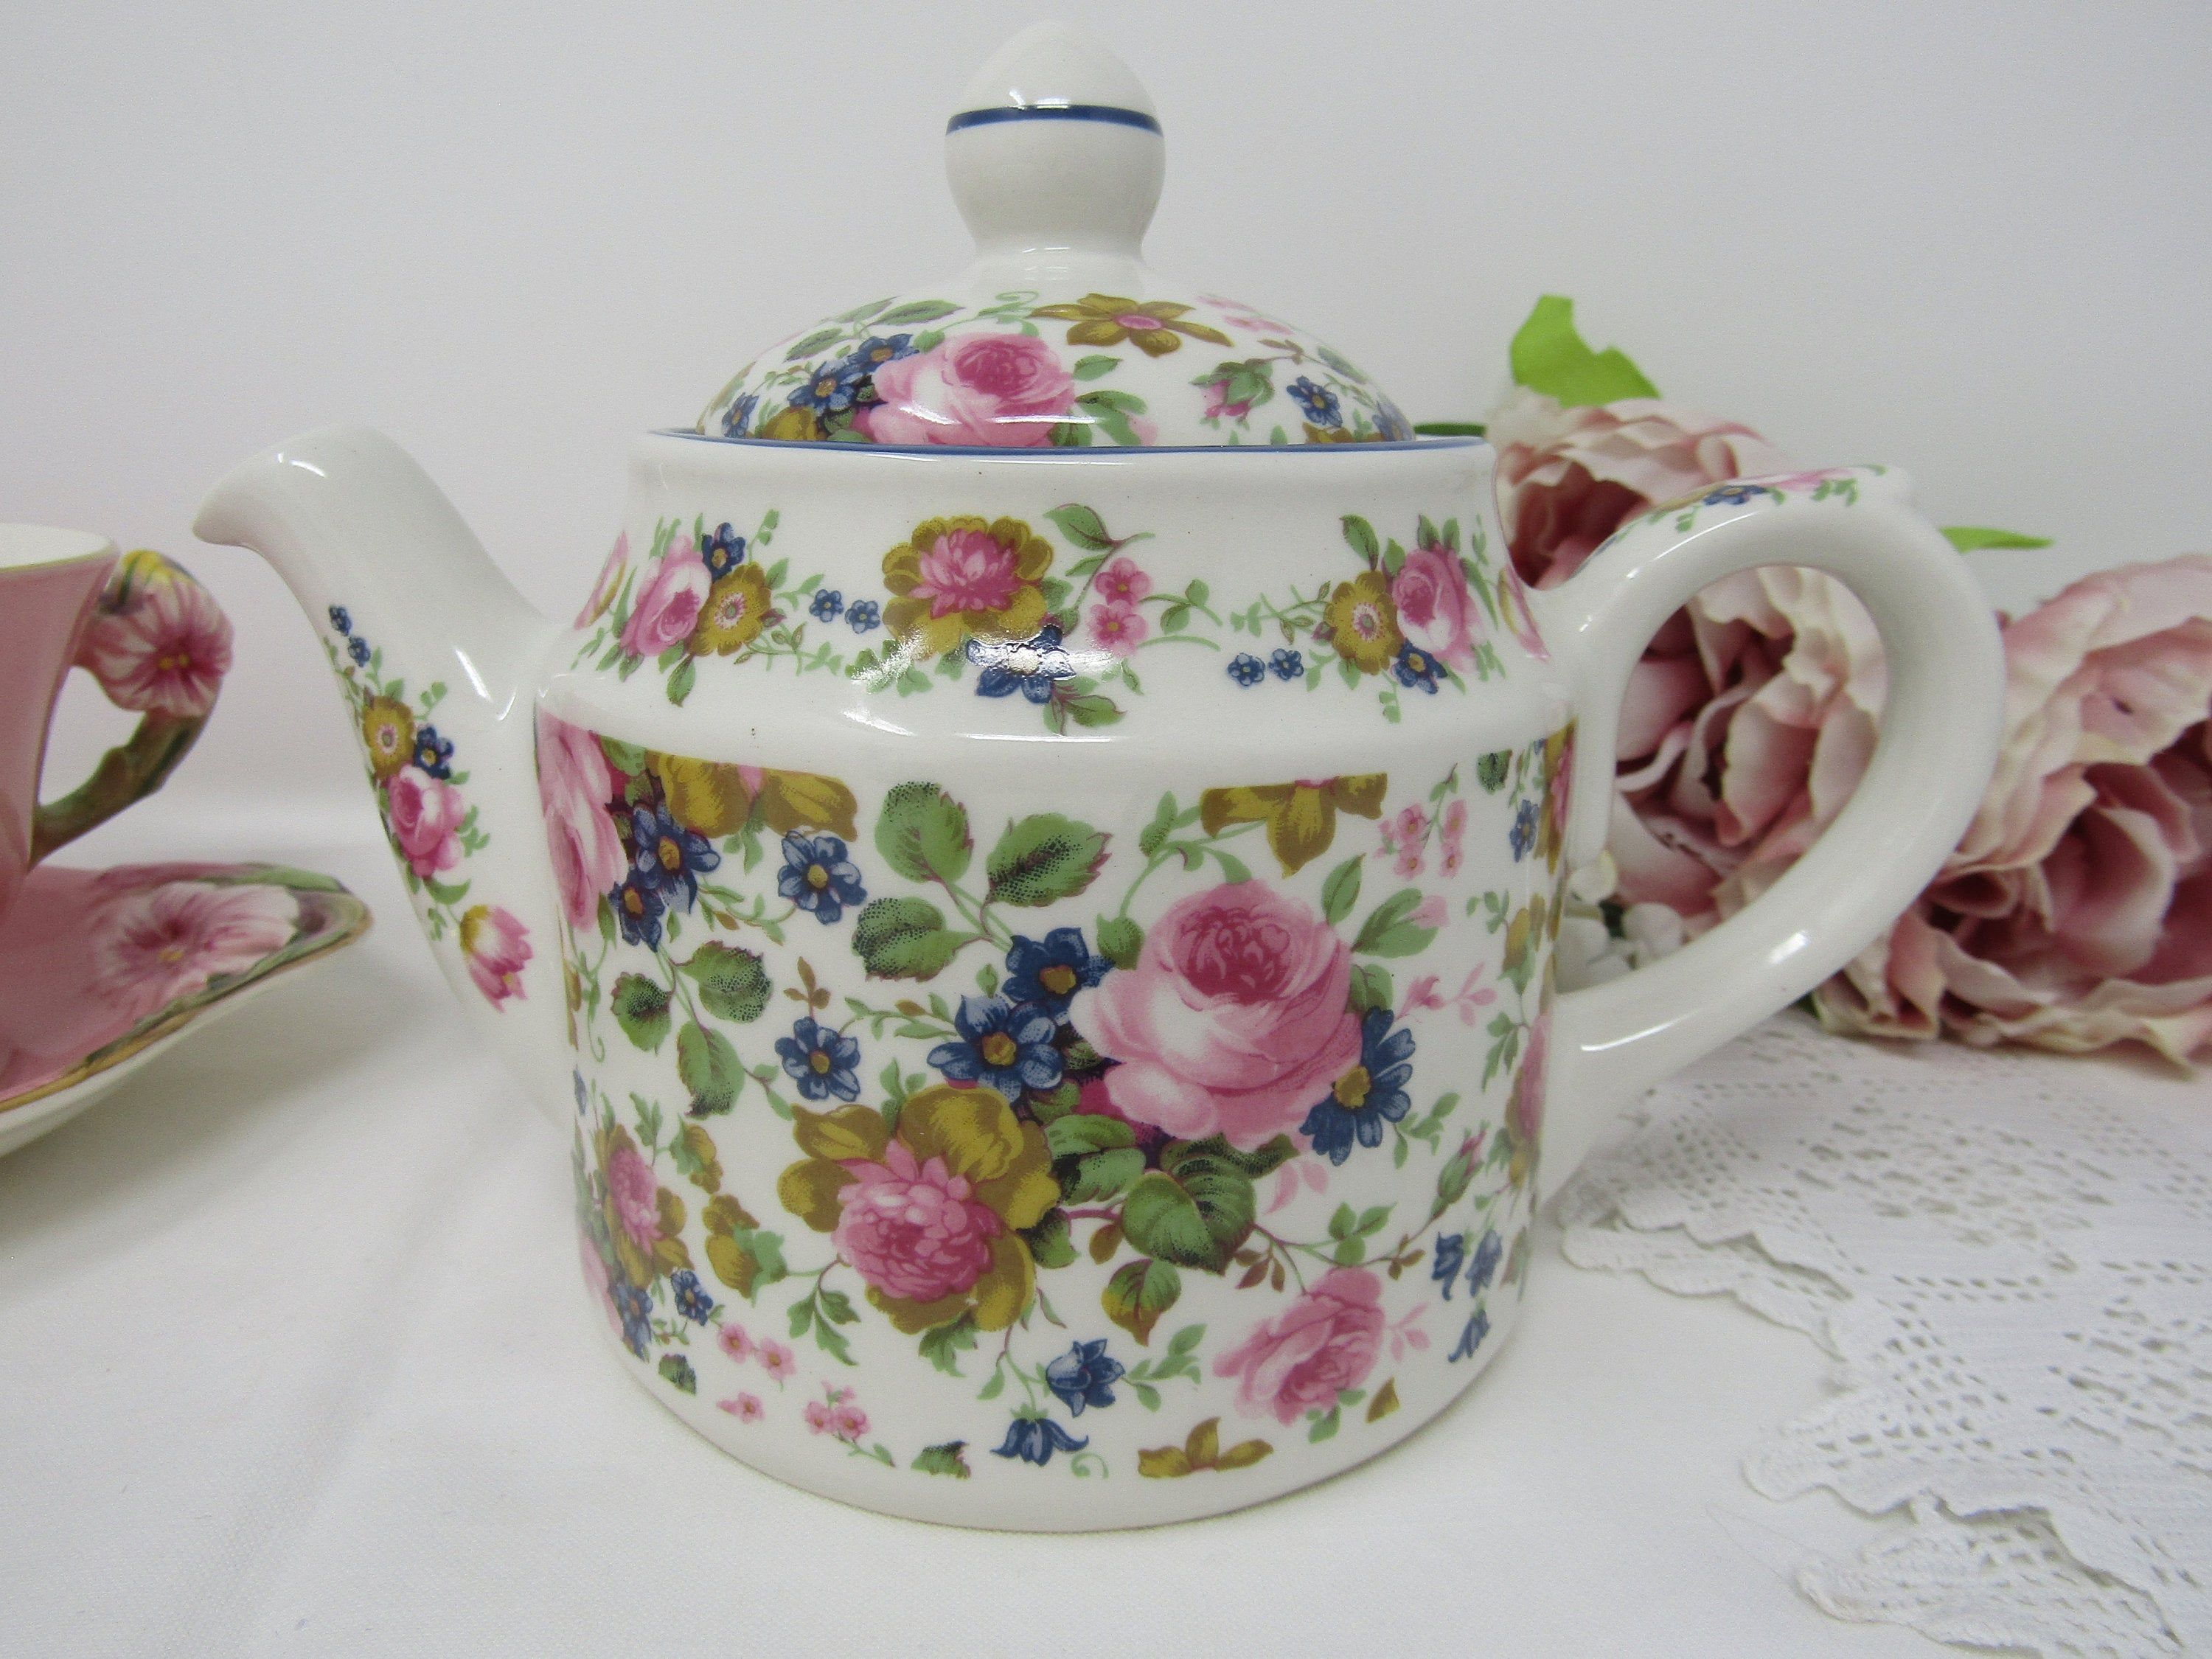 Sadler Olde Chintz Two Cup Teapot Floral China Teapot Collectable Teapot Gift For Her Small Teapot Afternoon Tea Vintage Tea Party Tea Pots China Teapot Vintage Tea